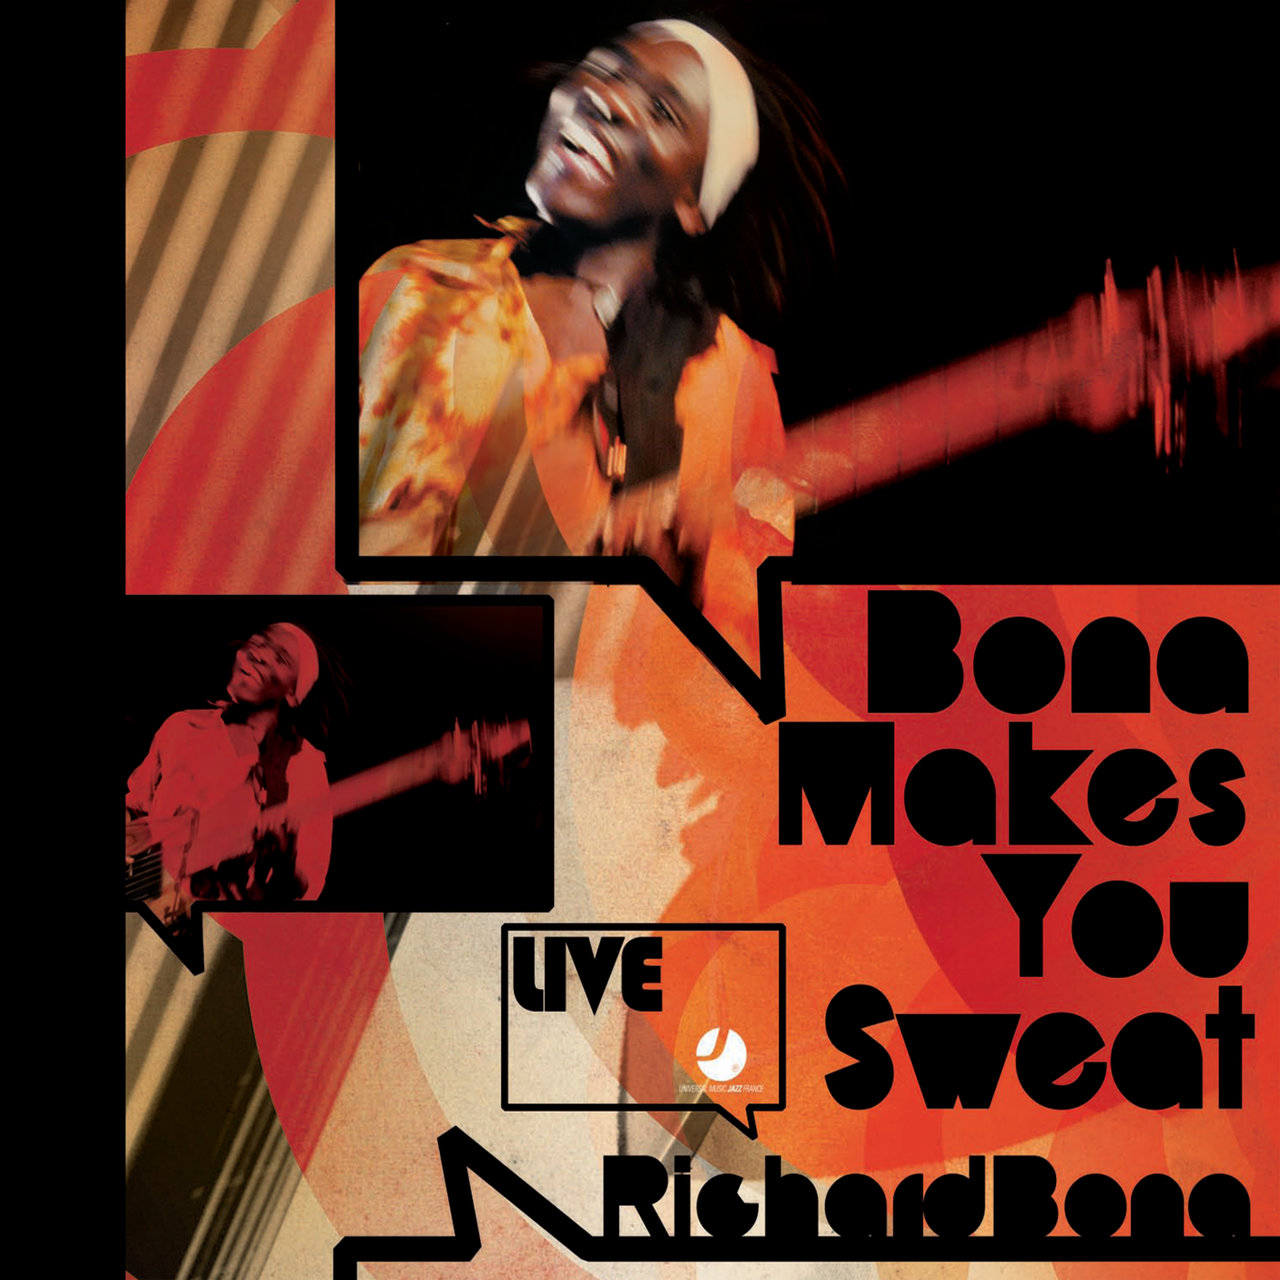 Bona Makes You Sweat - Live